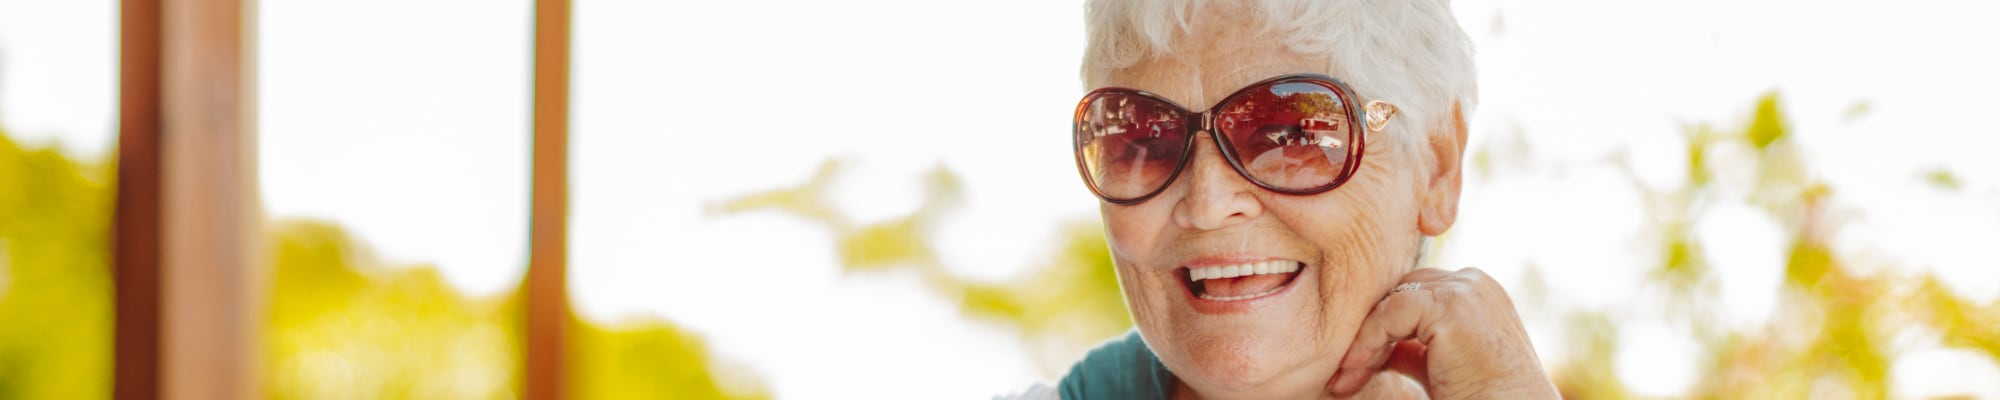 Reviews of Jackson, Michigan senior living